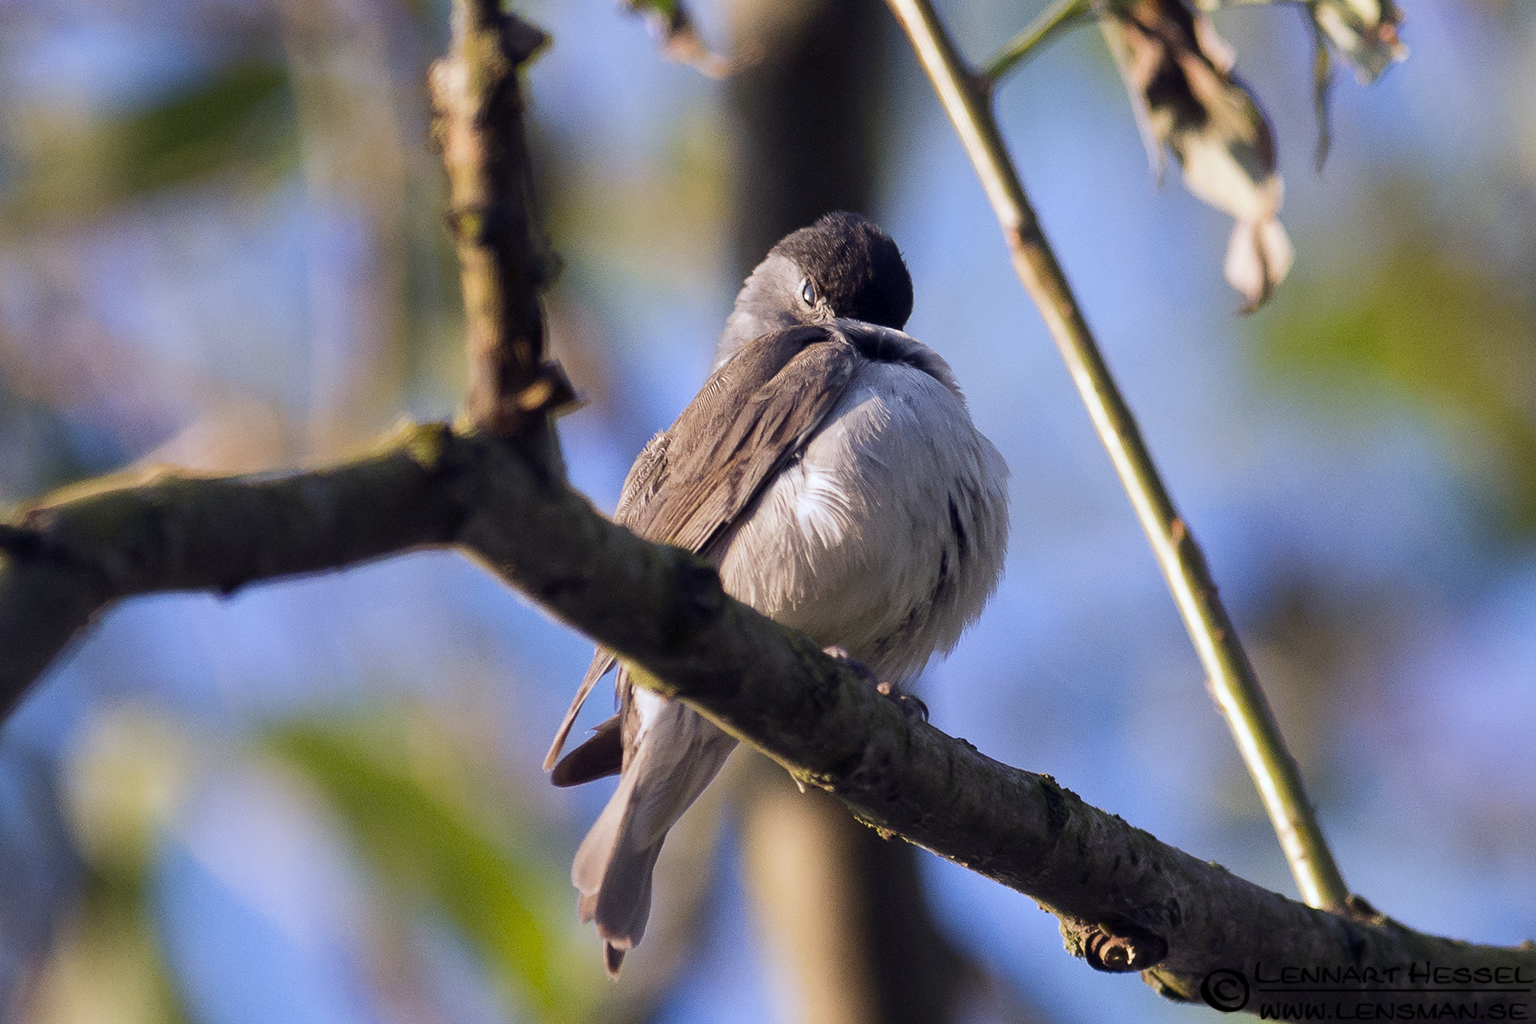 Blackcap at Säveån, Gothenburg